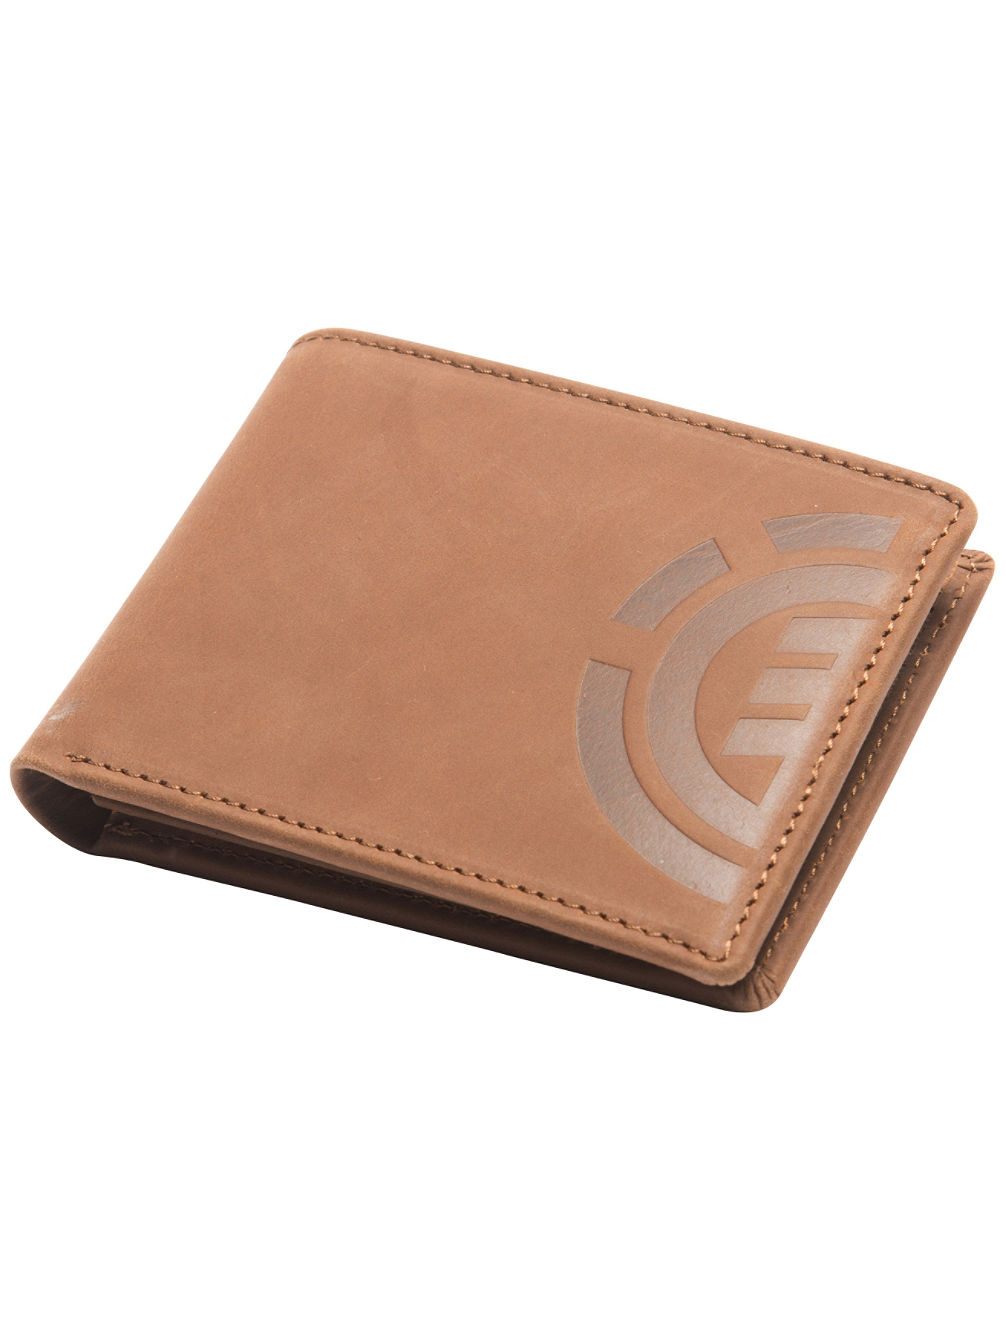 Daily Elite Wallet